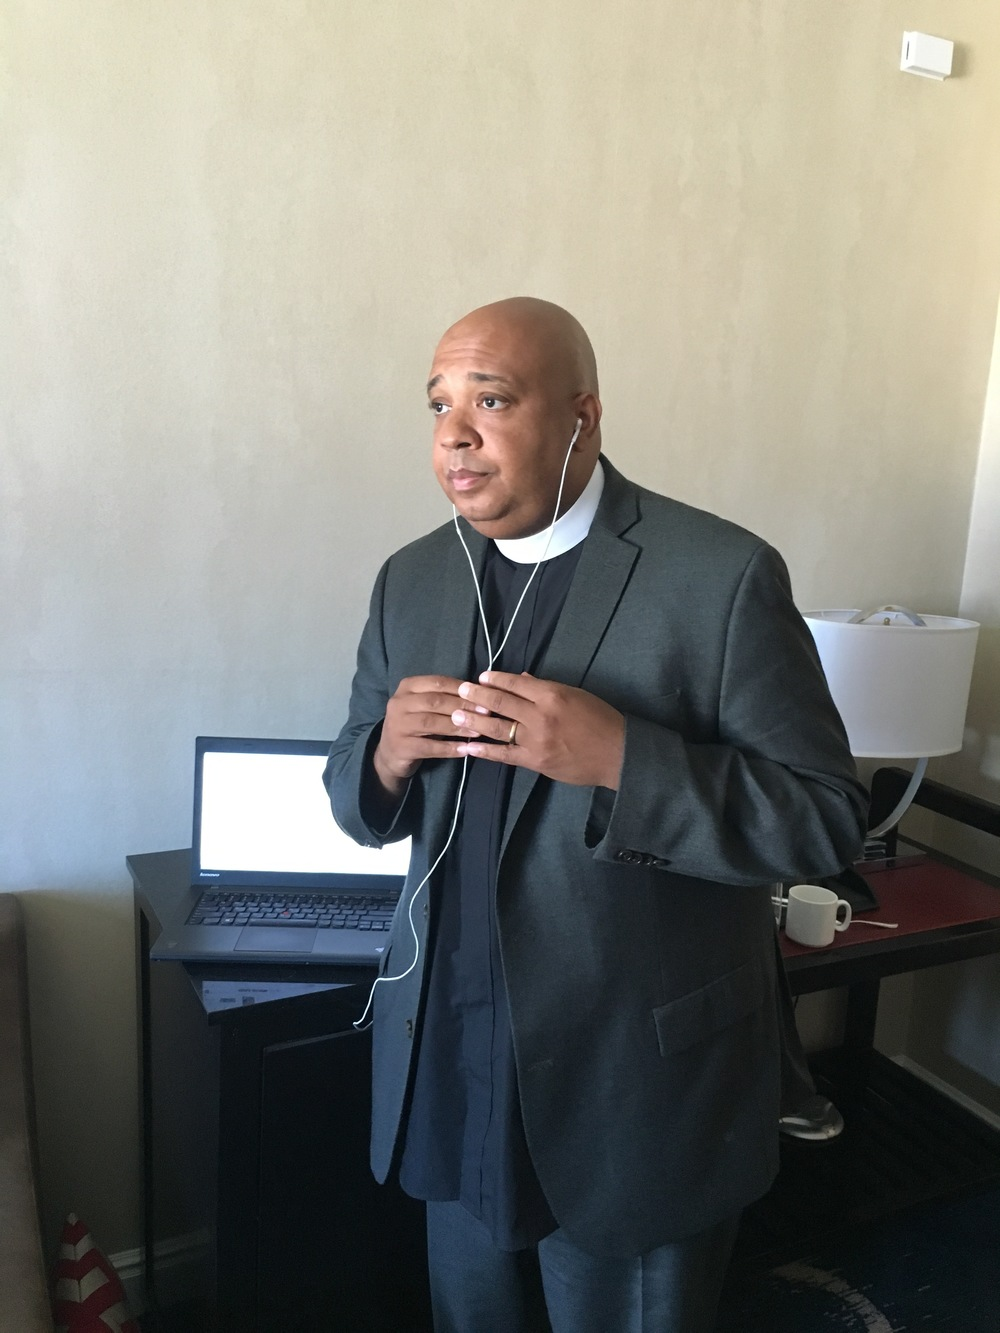 Rev Run taking a second to pose for a pic during the recording of his Juicebox Podcast episode.